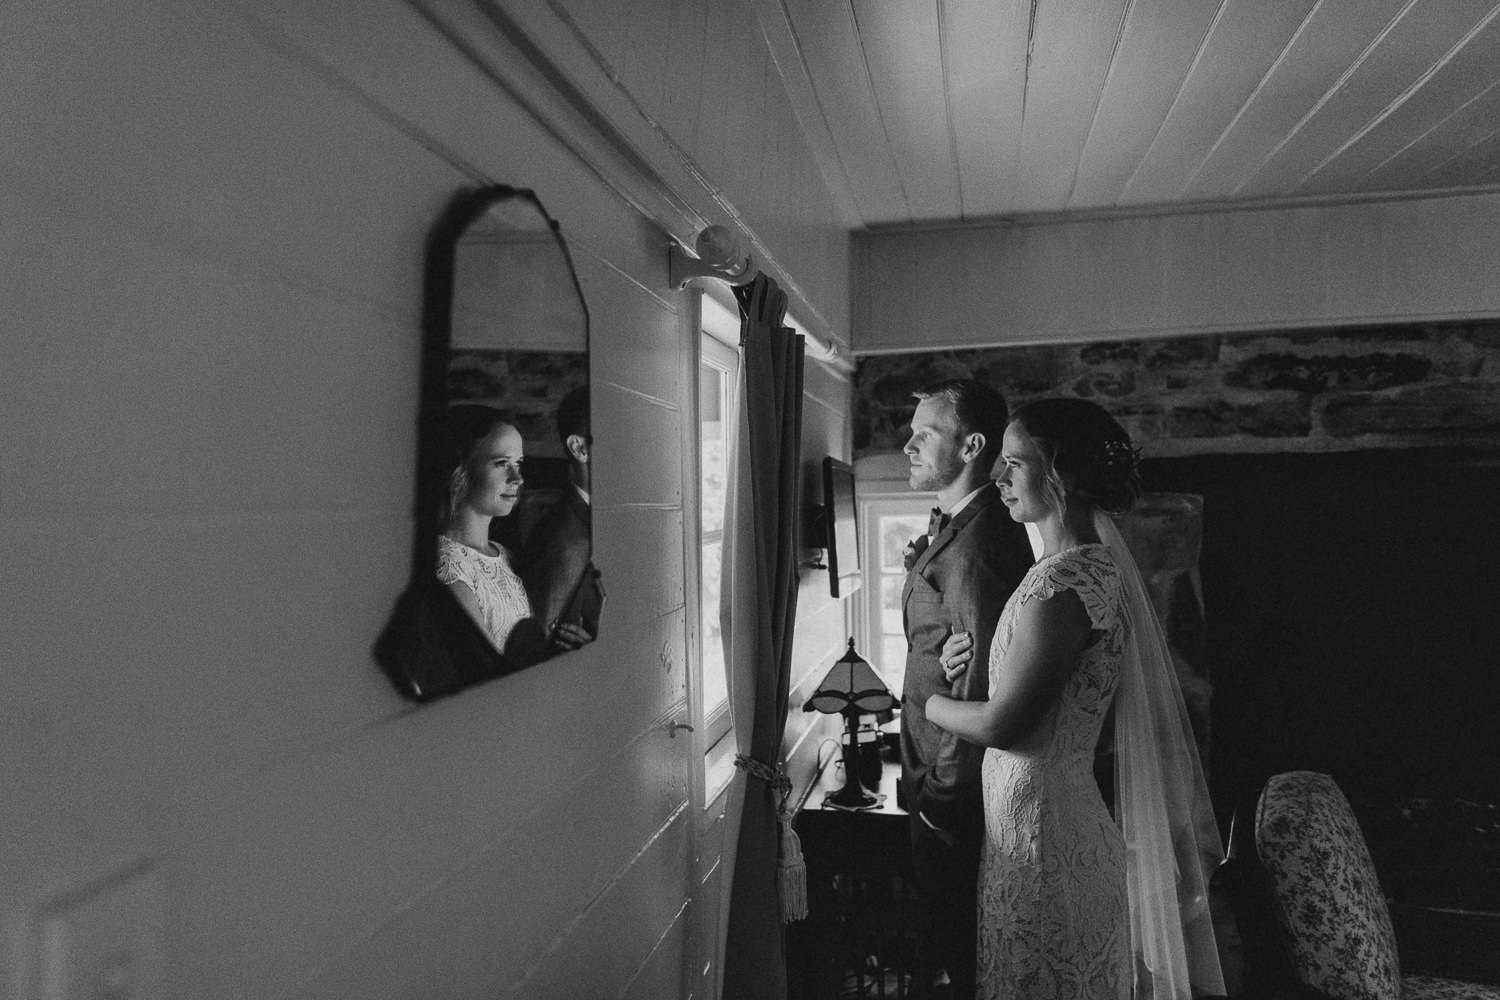 074-mali-brae-wedding-amy-michael